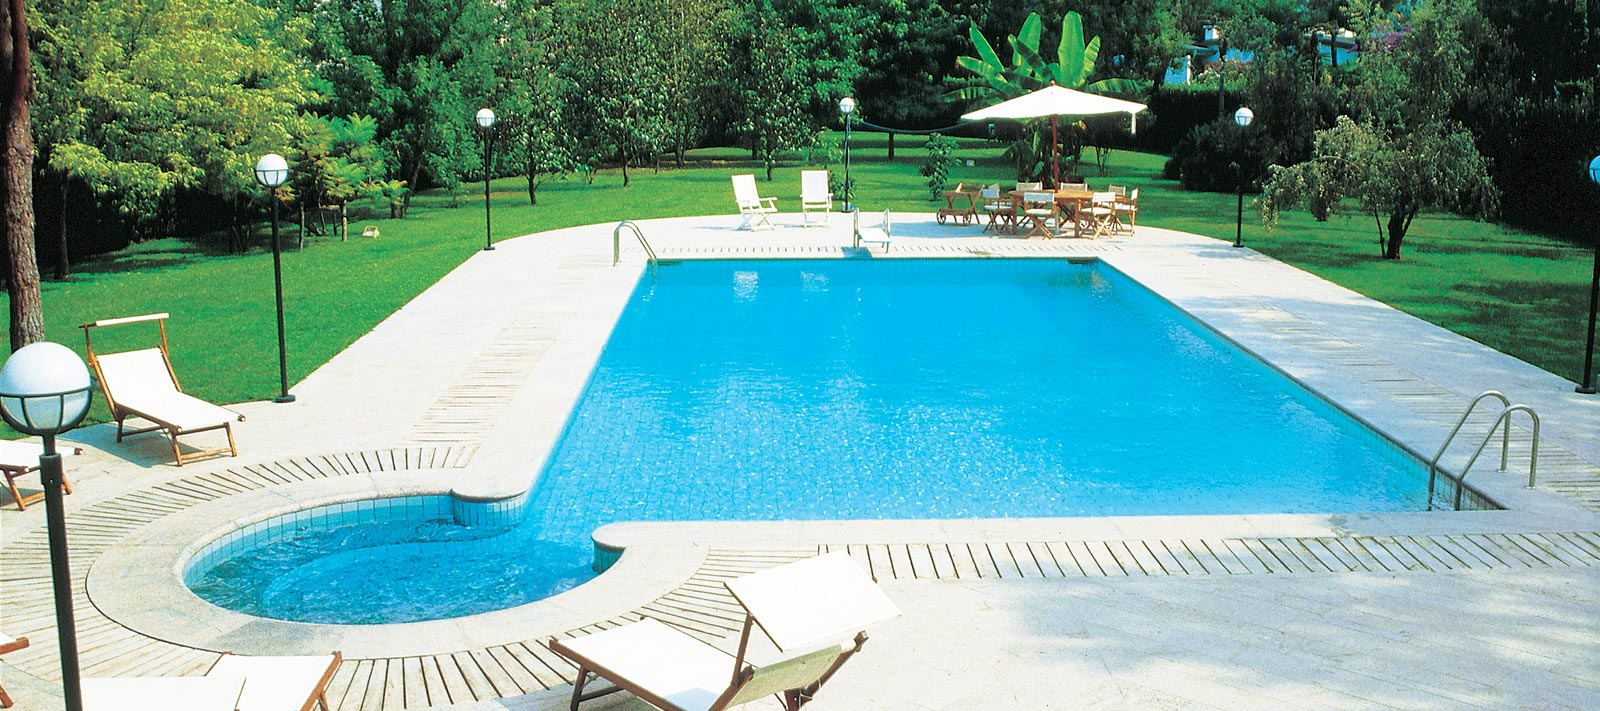 Impianti piscine interrate e piscine fuori terra for Accessori per piscine esterne